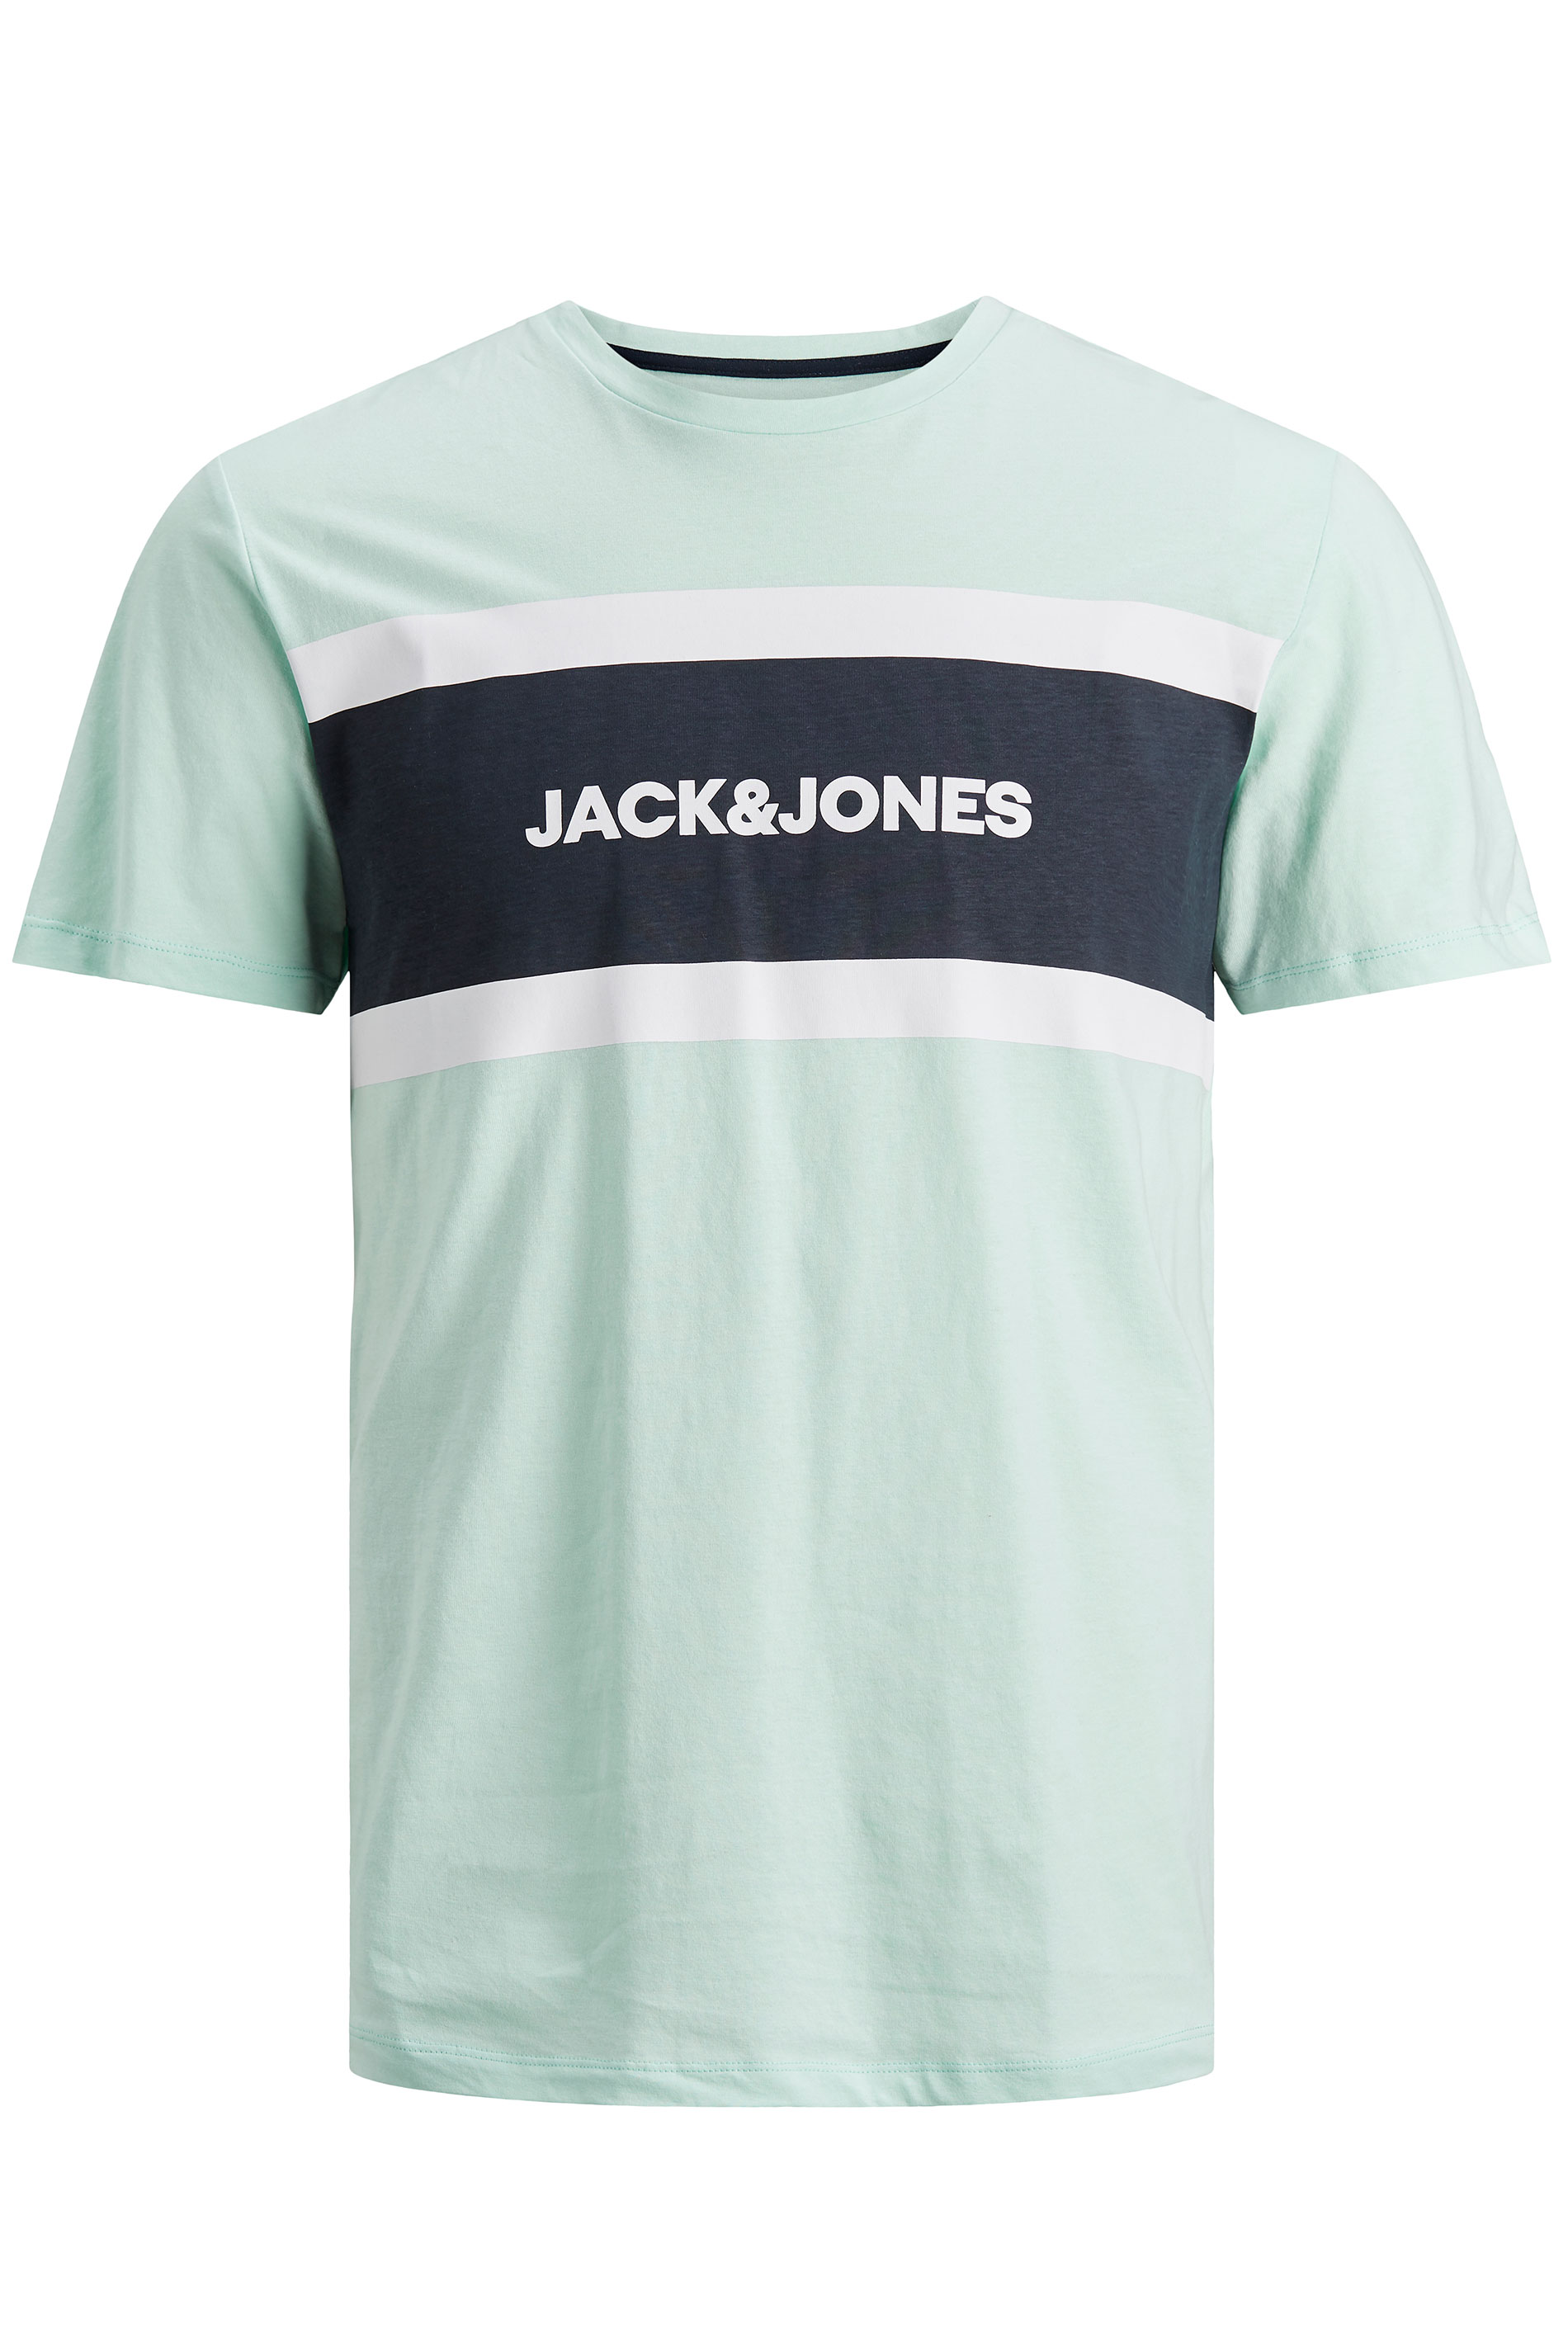 JACK & JONES Green Shaker T-Shirt